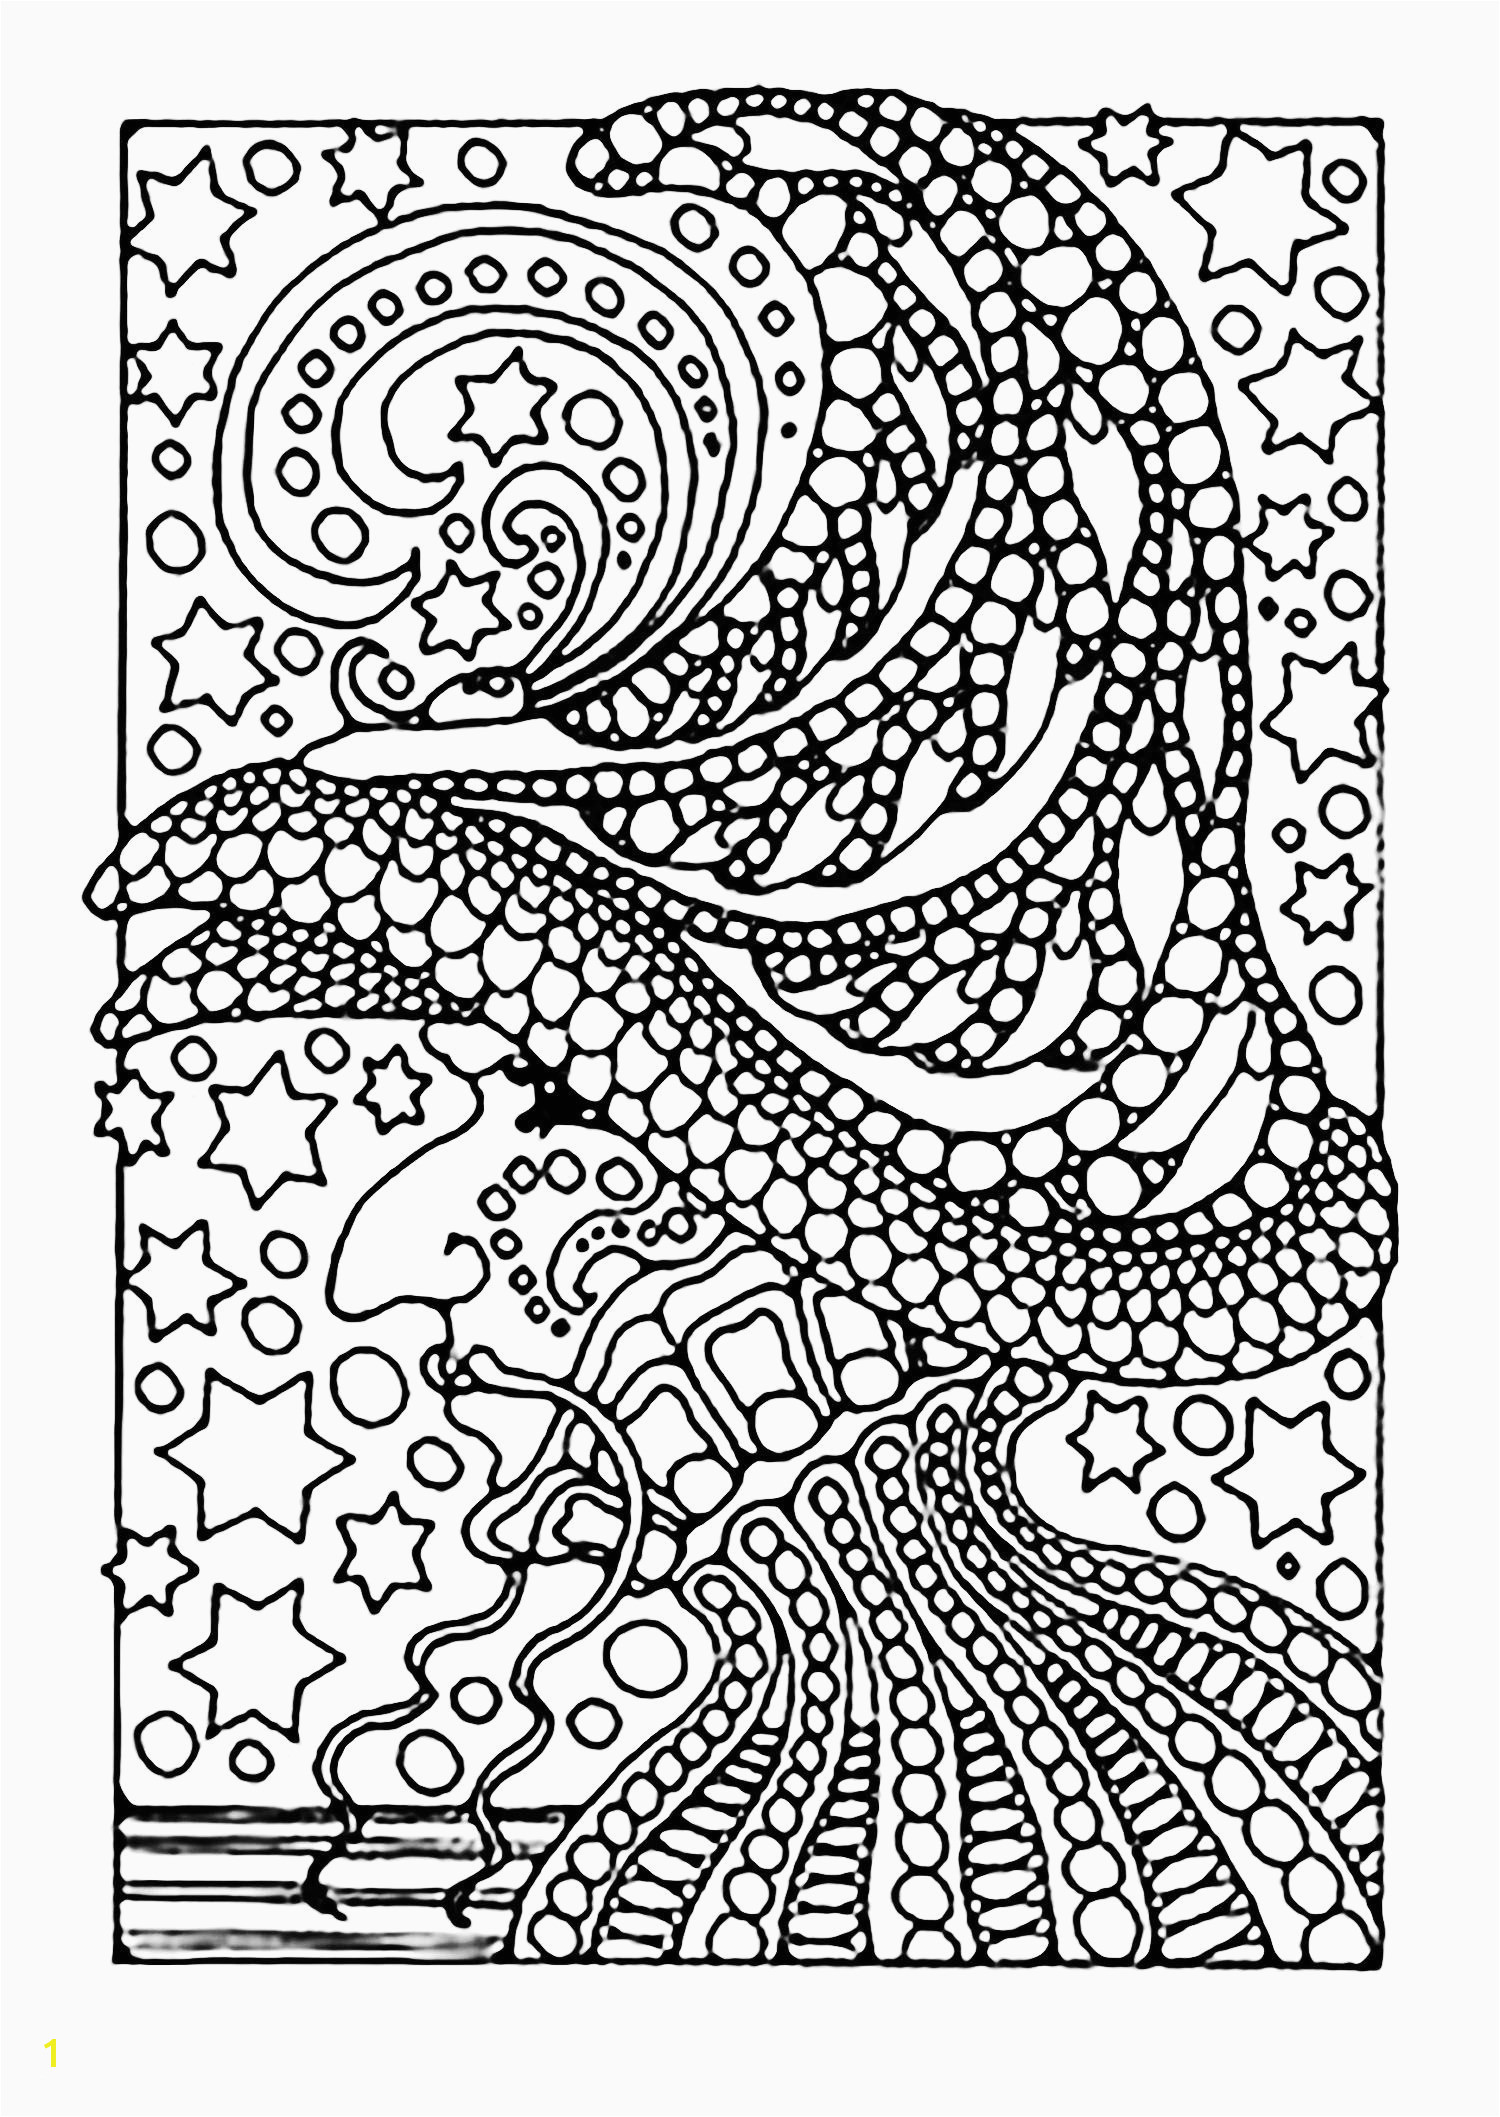 Free Coloring Pages Book Interesting Cod Coloring Pages Beautiful Awesome Cod Coloring Pages Index 0 0d